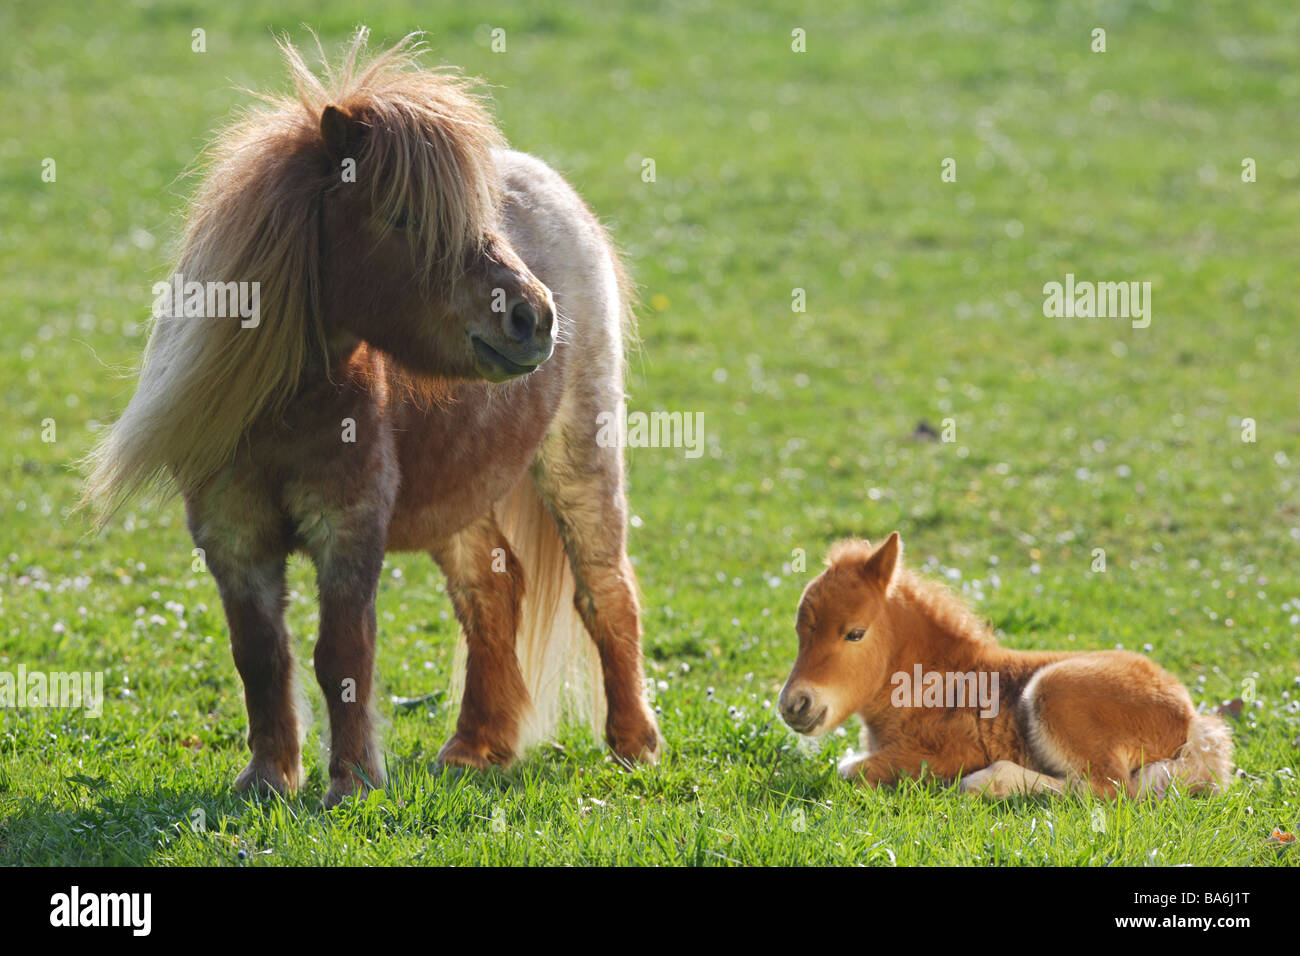 mini shetlandpony pferd stute und fohlen auf der wiese stockfoto bild 23502804 alamy. Black Bedroom Furniture Sets. Home Design Ideas